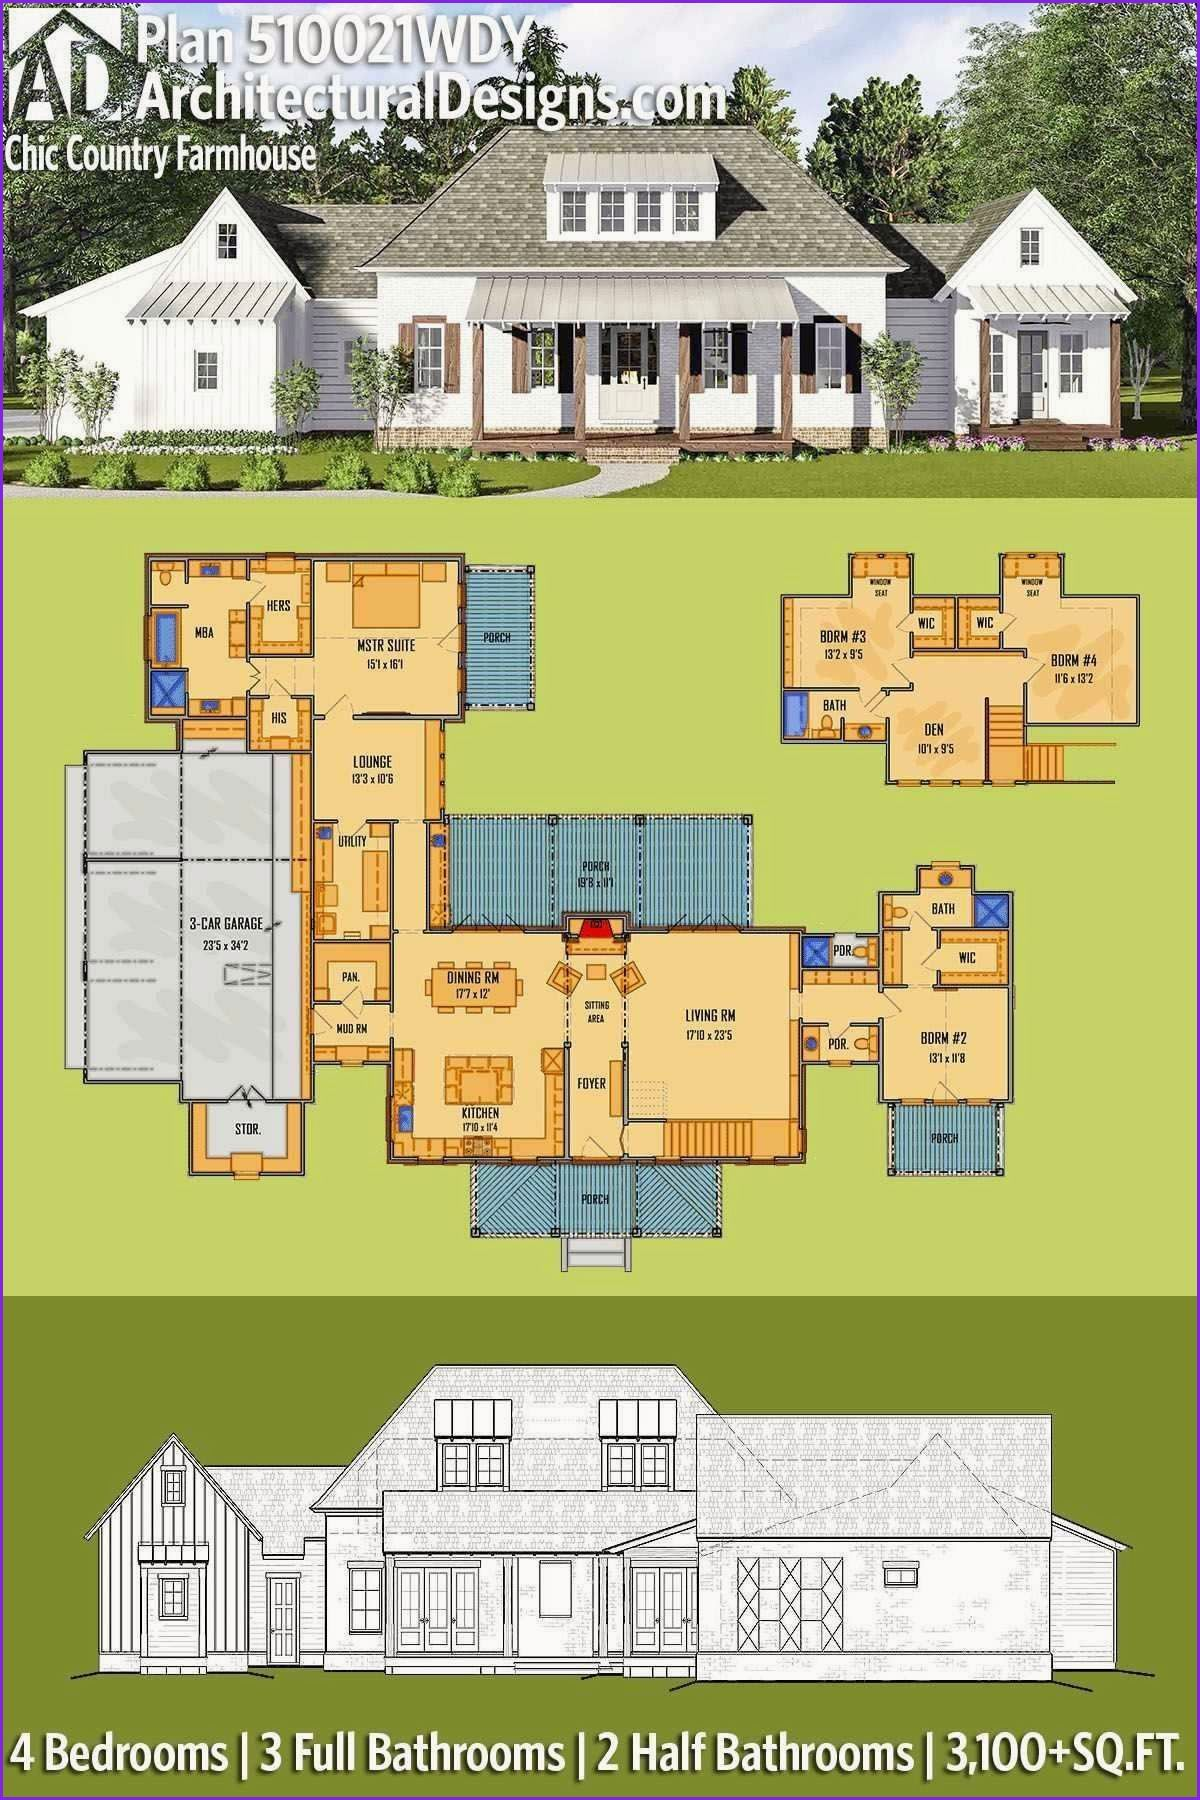 Awesome Simple 4 Bedroom House Plans Architectural Design House Plans House Plans Farmhouse House Blueprints